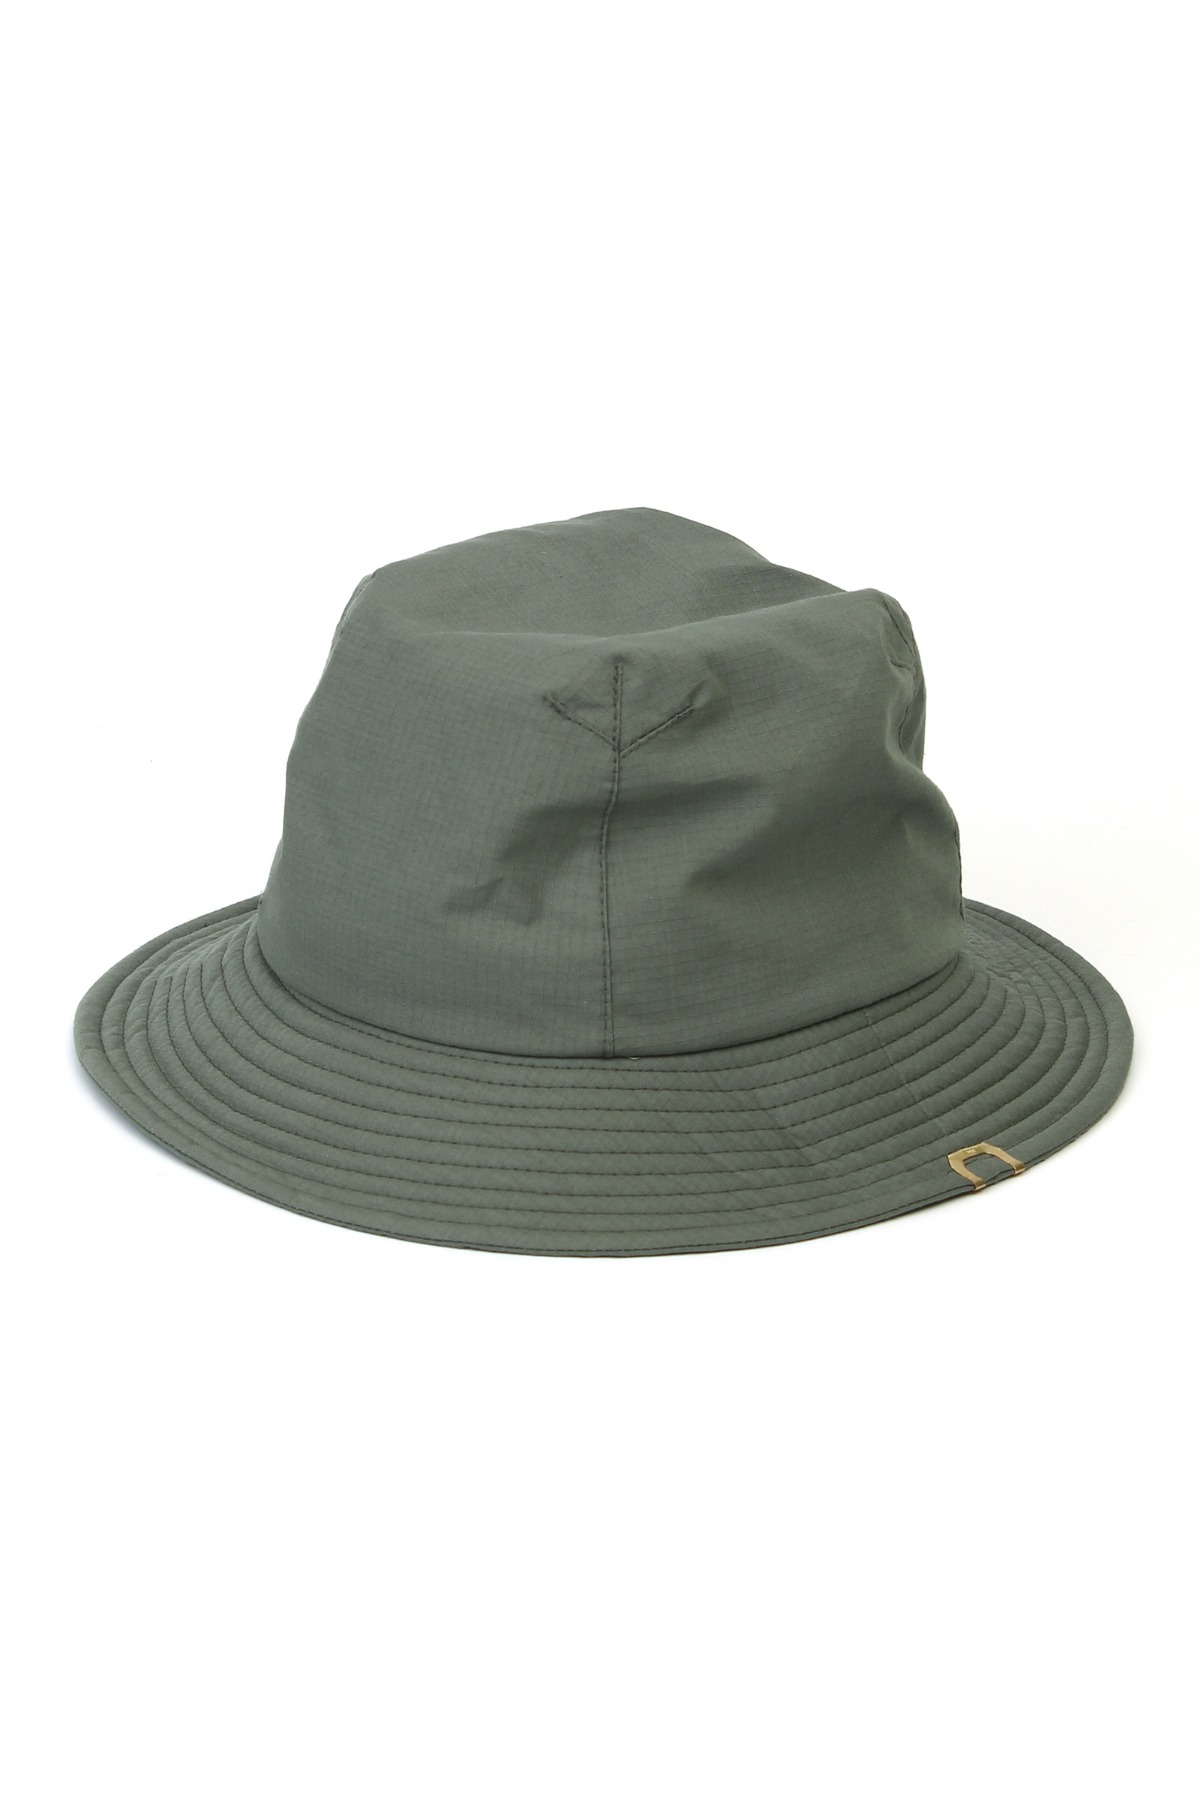 MOUNTAIN HAT / CN RIP / ARMY